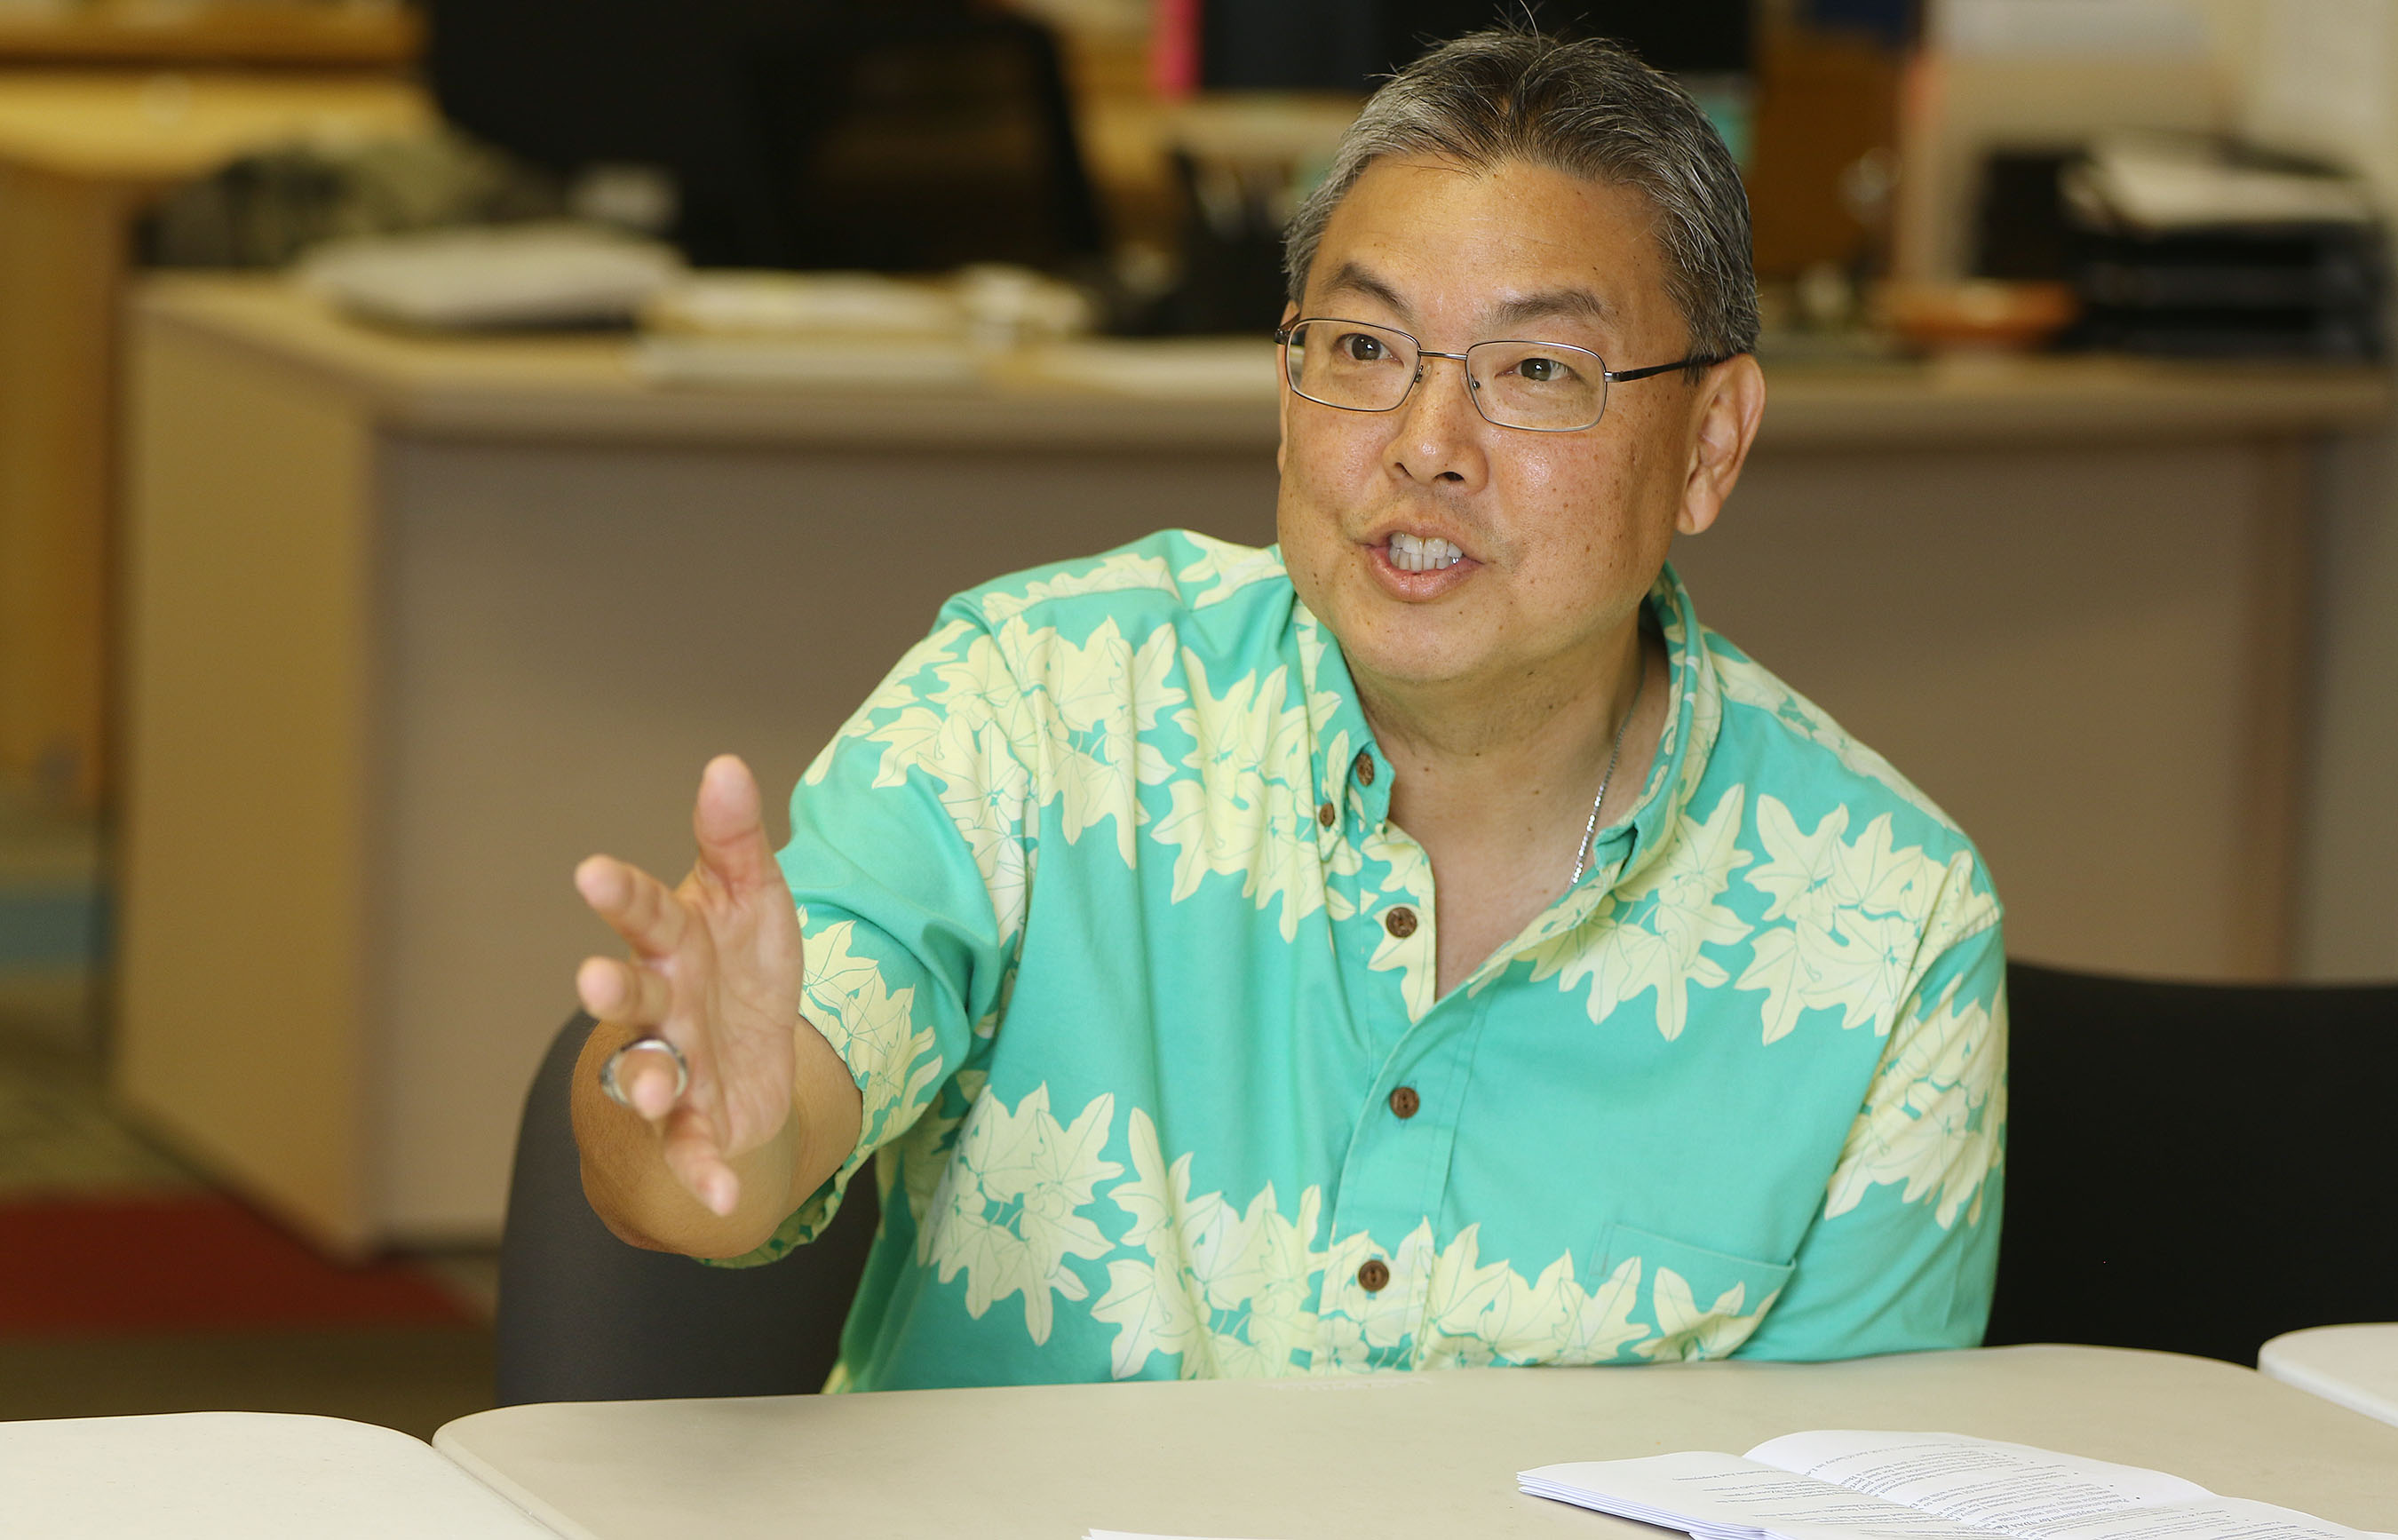 <p>March 29: Congressman Mark Takai speaks enthusiastically about his plan to seek re-election during a visit with the Civil Beat Editorial Board. Two months later, he said he would not run again because his pancreatic cancer had spread. <em>Cory Lum/Civil Beat</em></p>